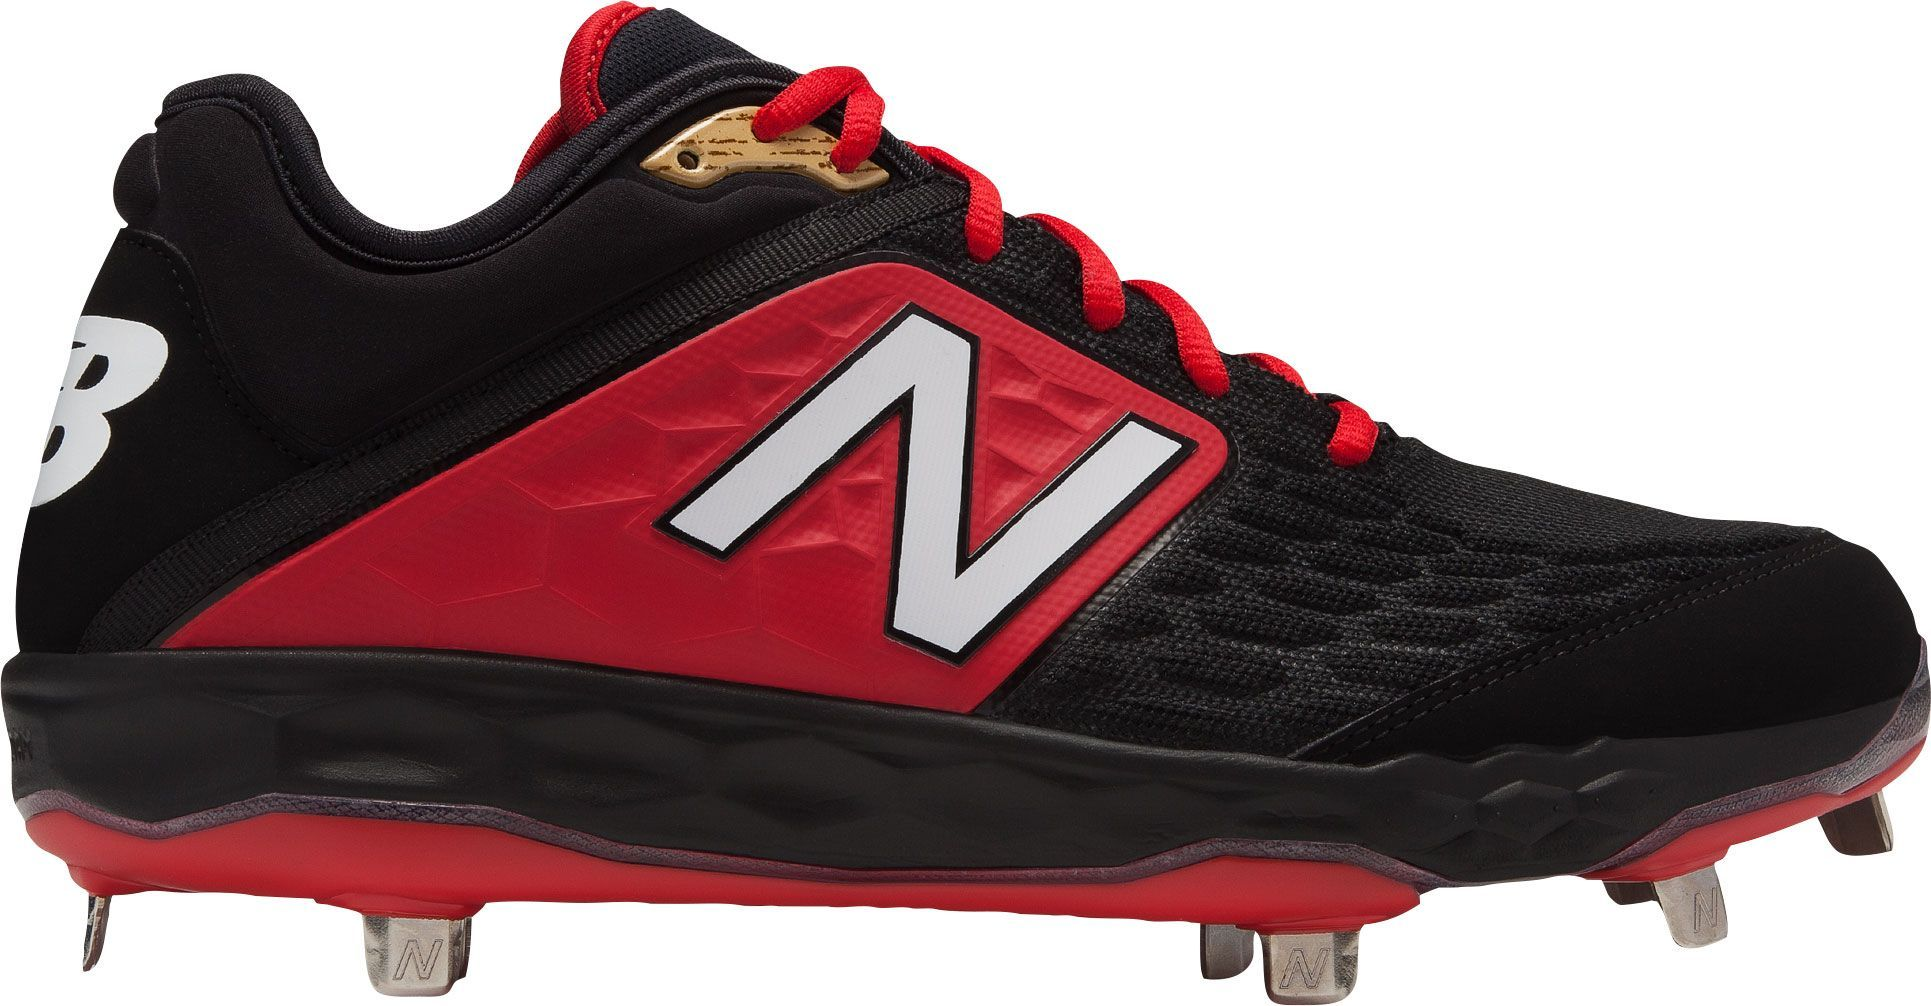 534059ef26b1 New Balance Men's 3000 V4 Metal Baseball Cleats, Size: 7.0, Red ...